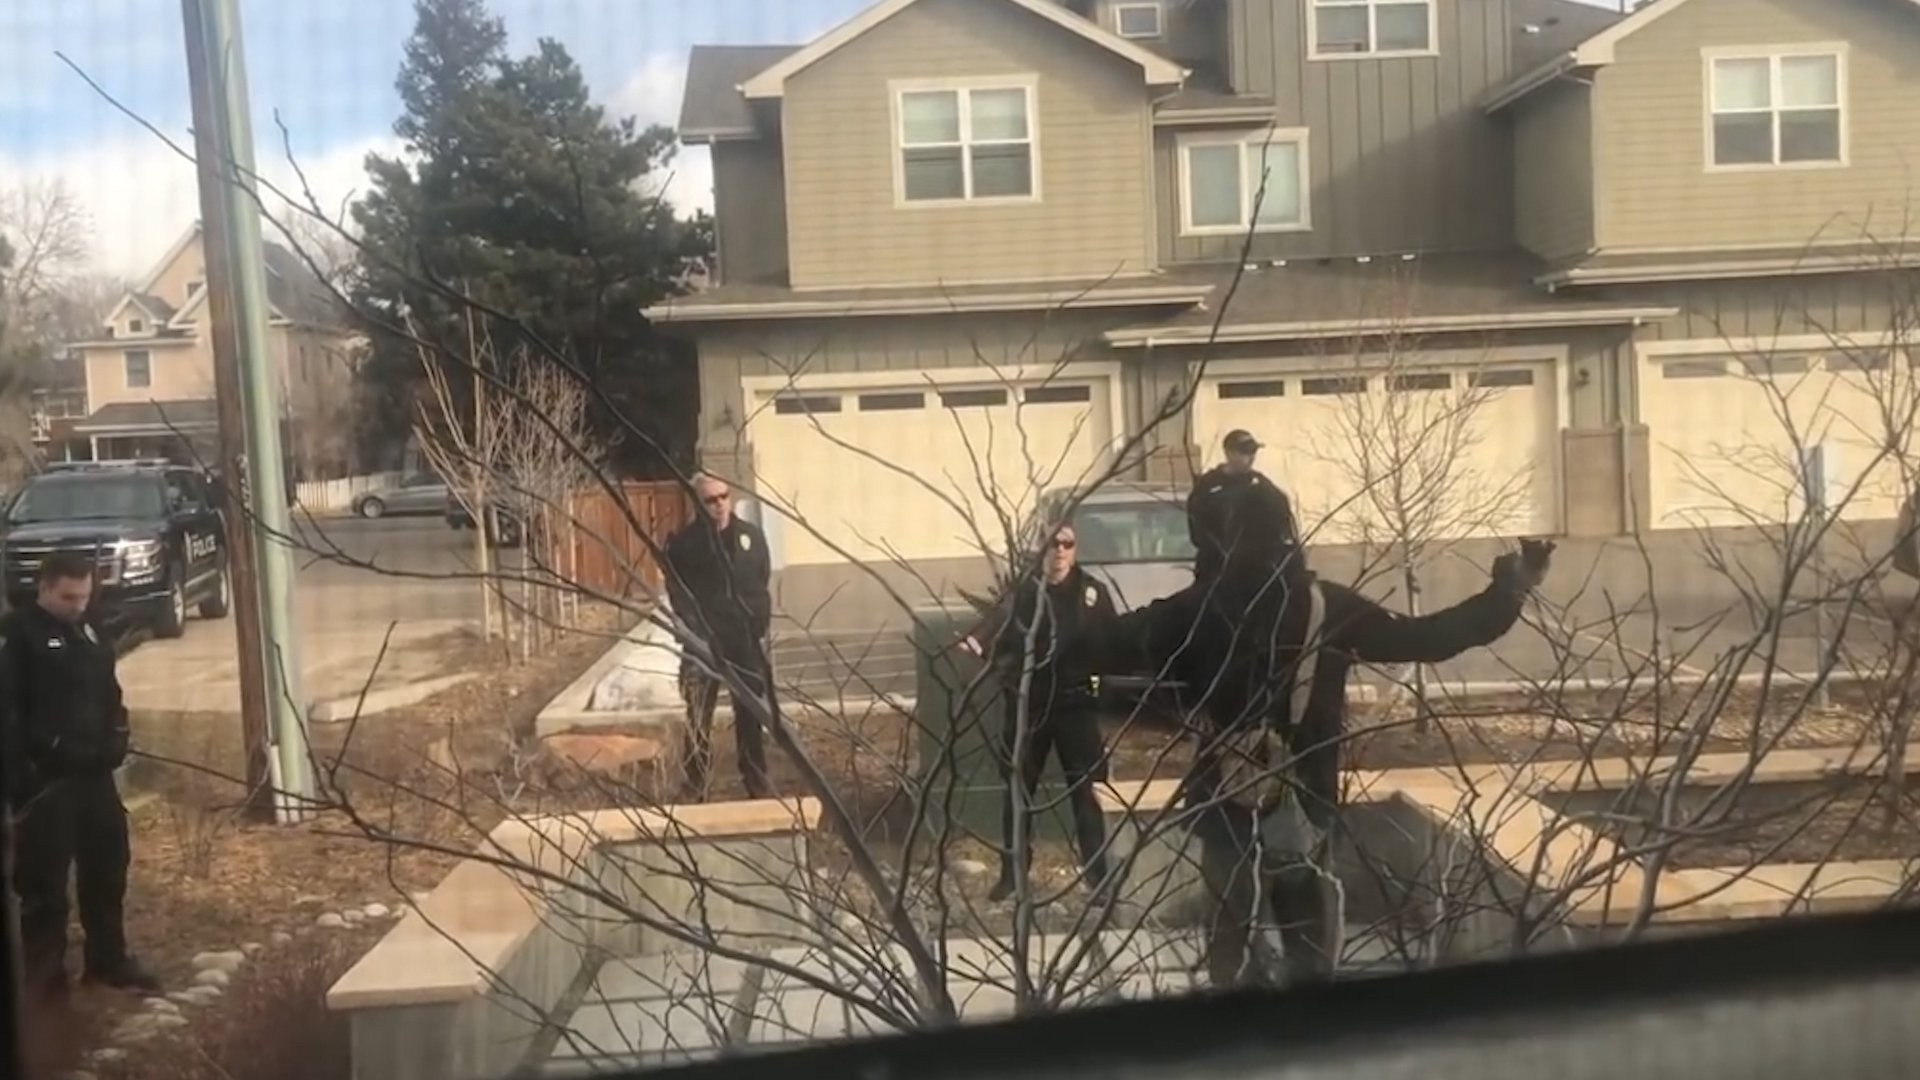 A still from a bystander's video shows Boulder police officers and the man they confronted. (CNN)